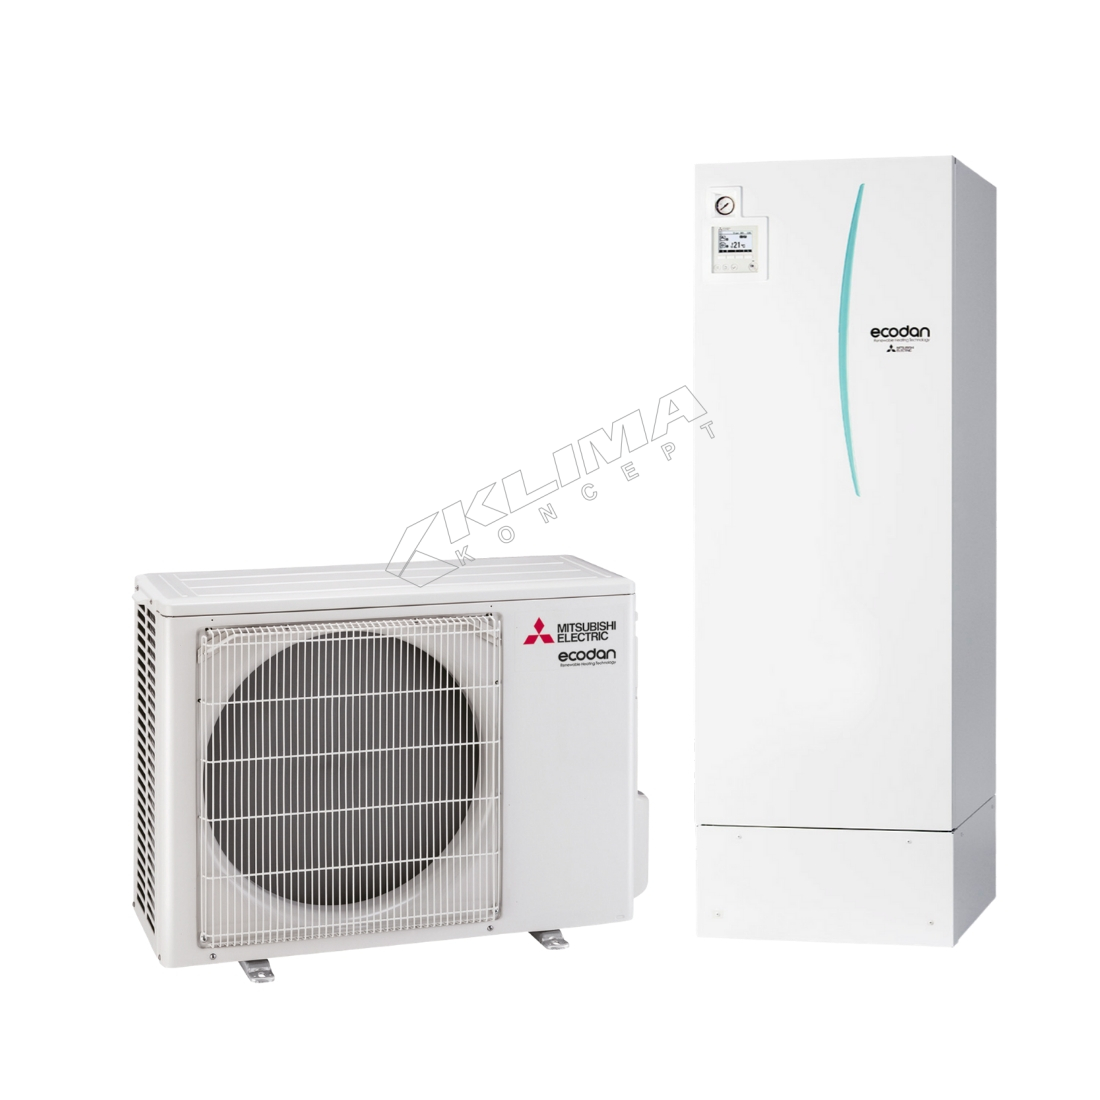 Mitsubishi Electric Ecodan - Set PUHZ-SW50VKA+EHST20D-YM9+PAC-TH011-E